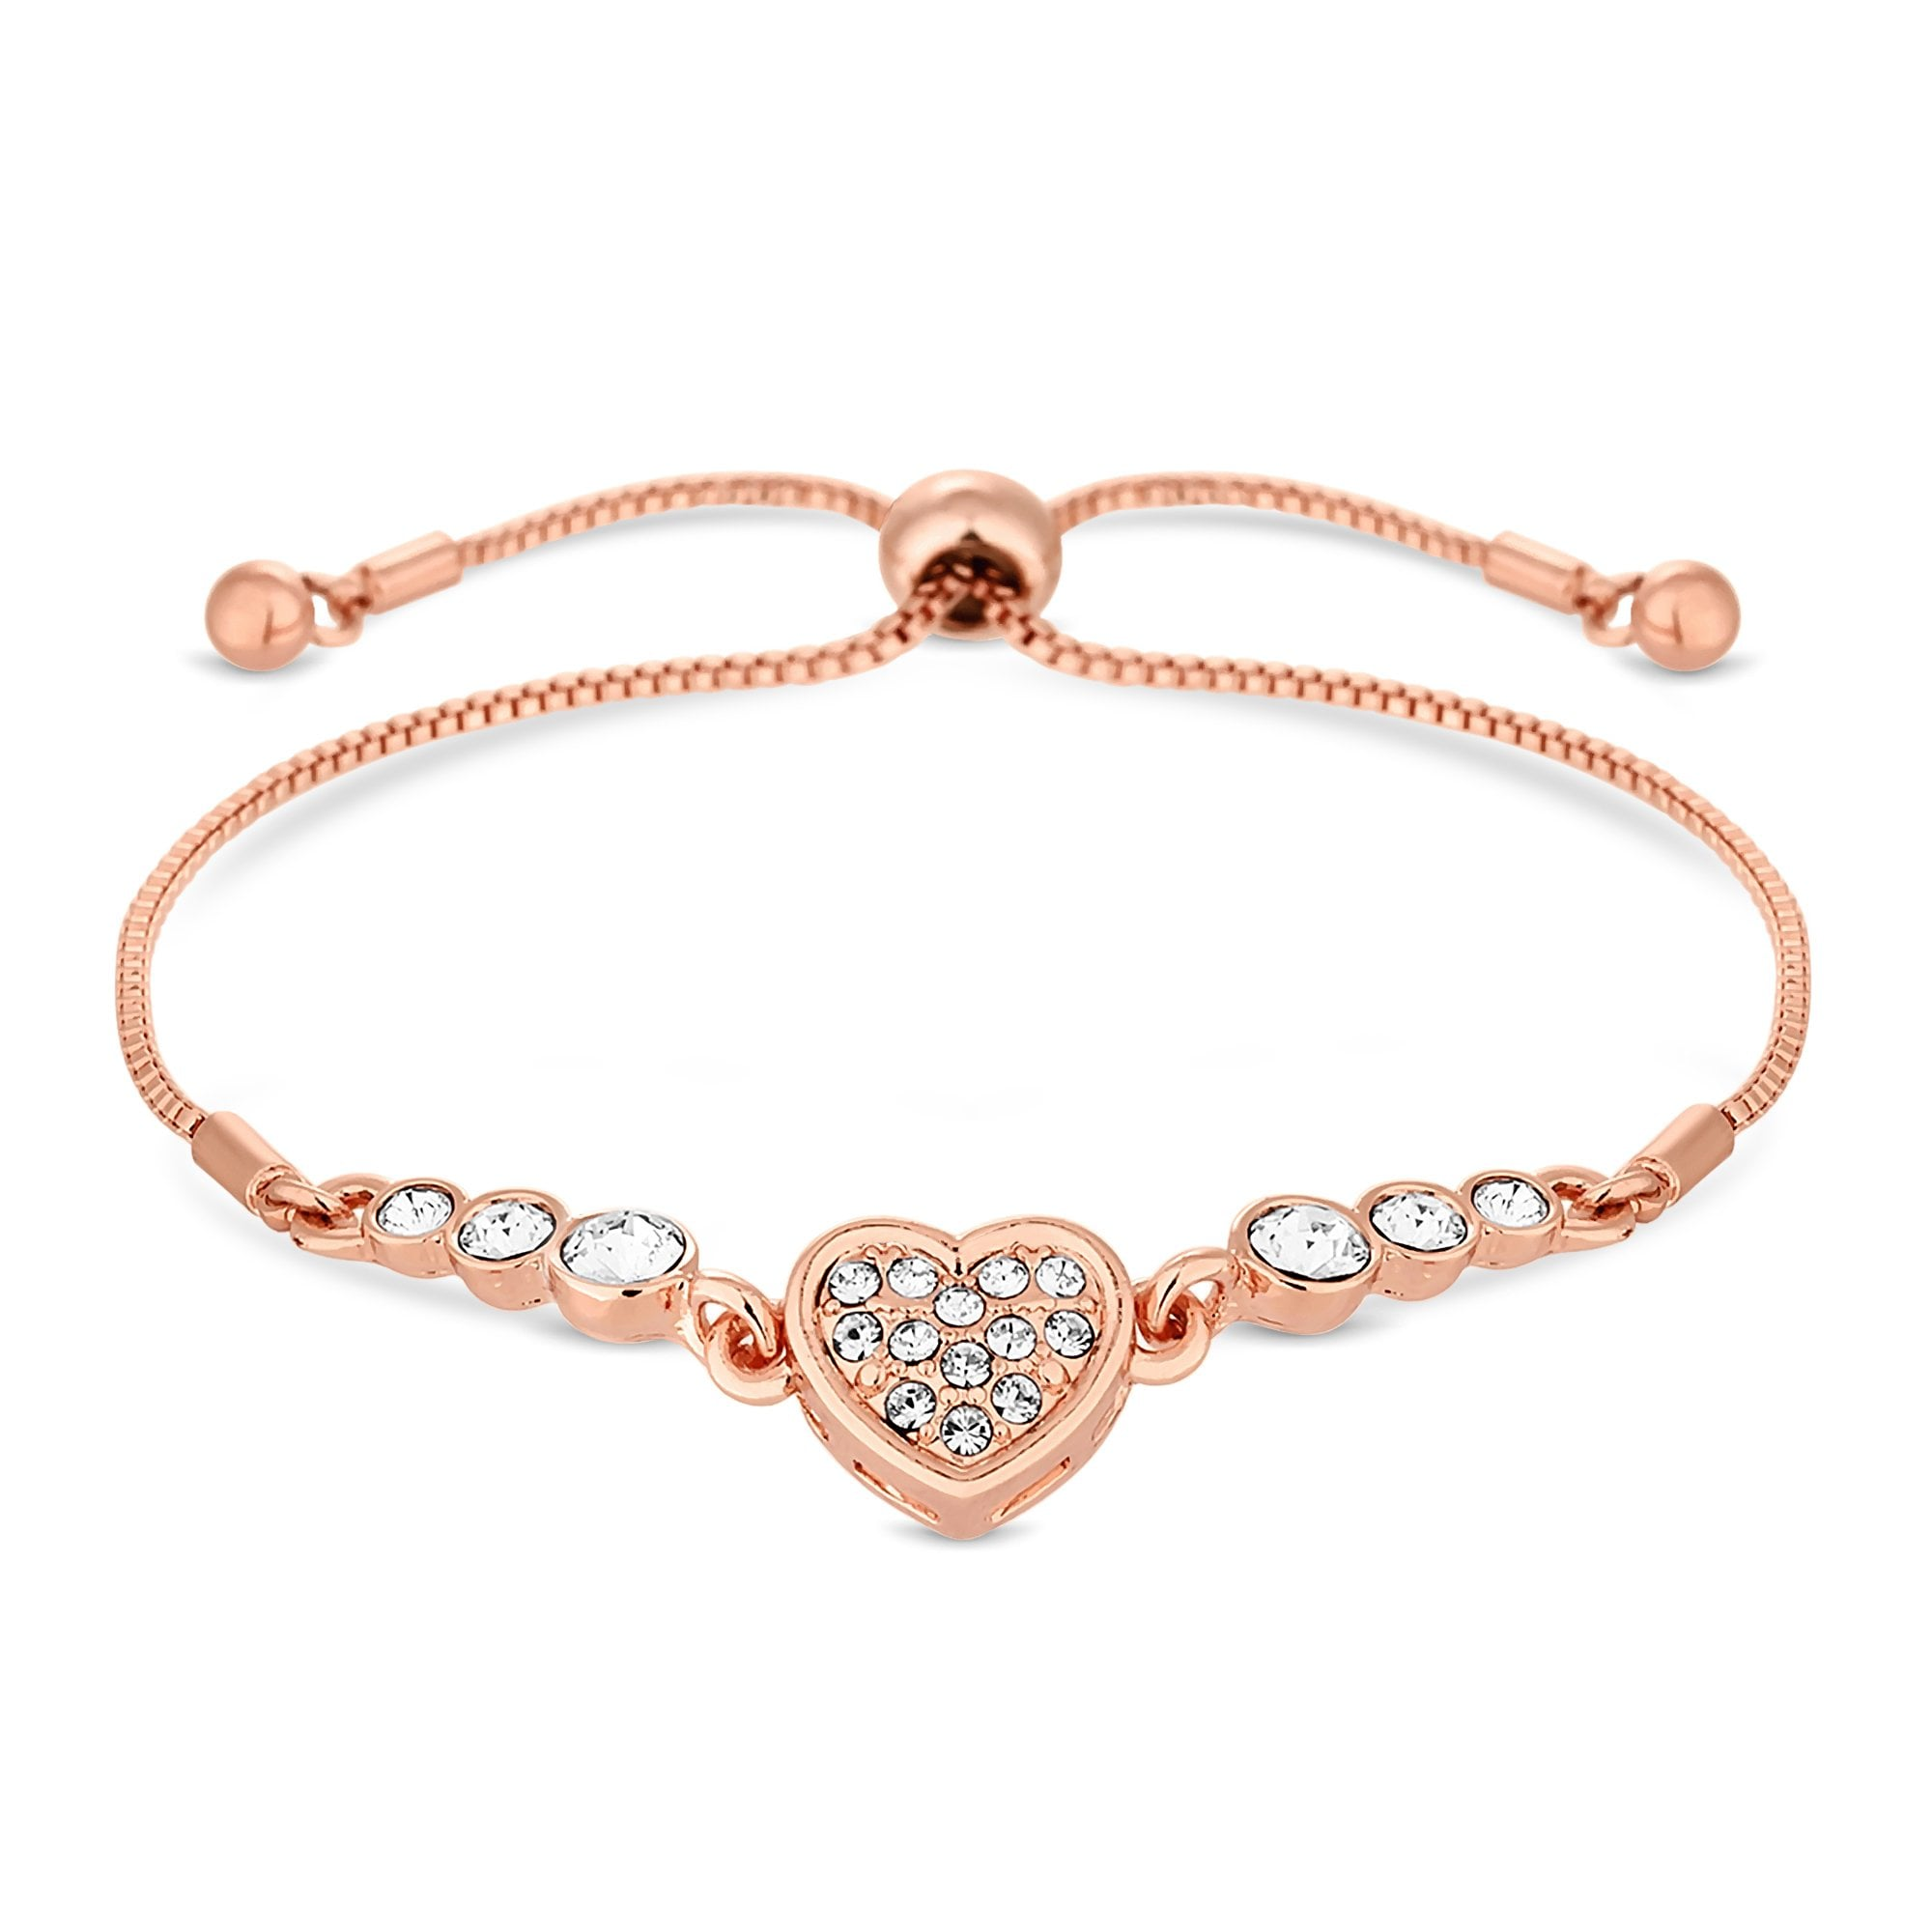 e44e79cfeac1 Jon Richard made with Swarovski® crystals Rose Gold Plated Clear Heart  Toggle Bracelet Embellished With